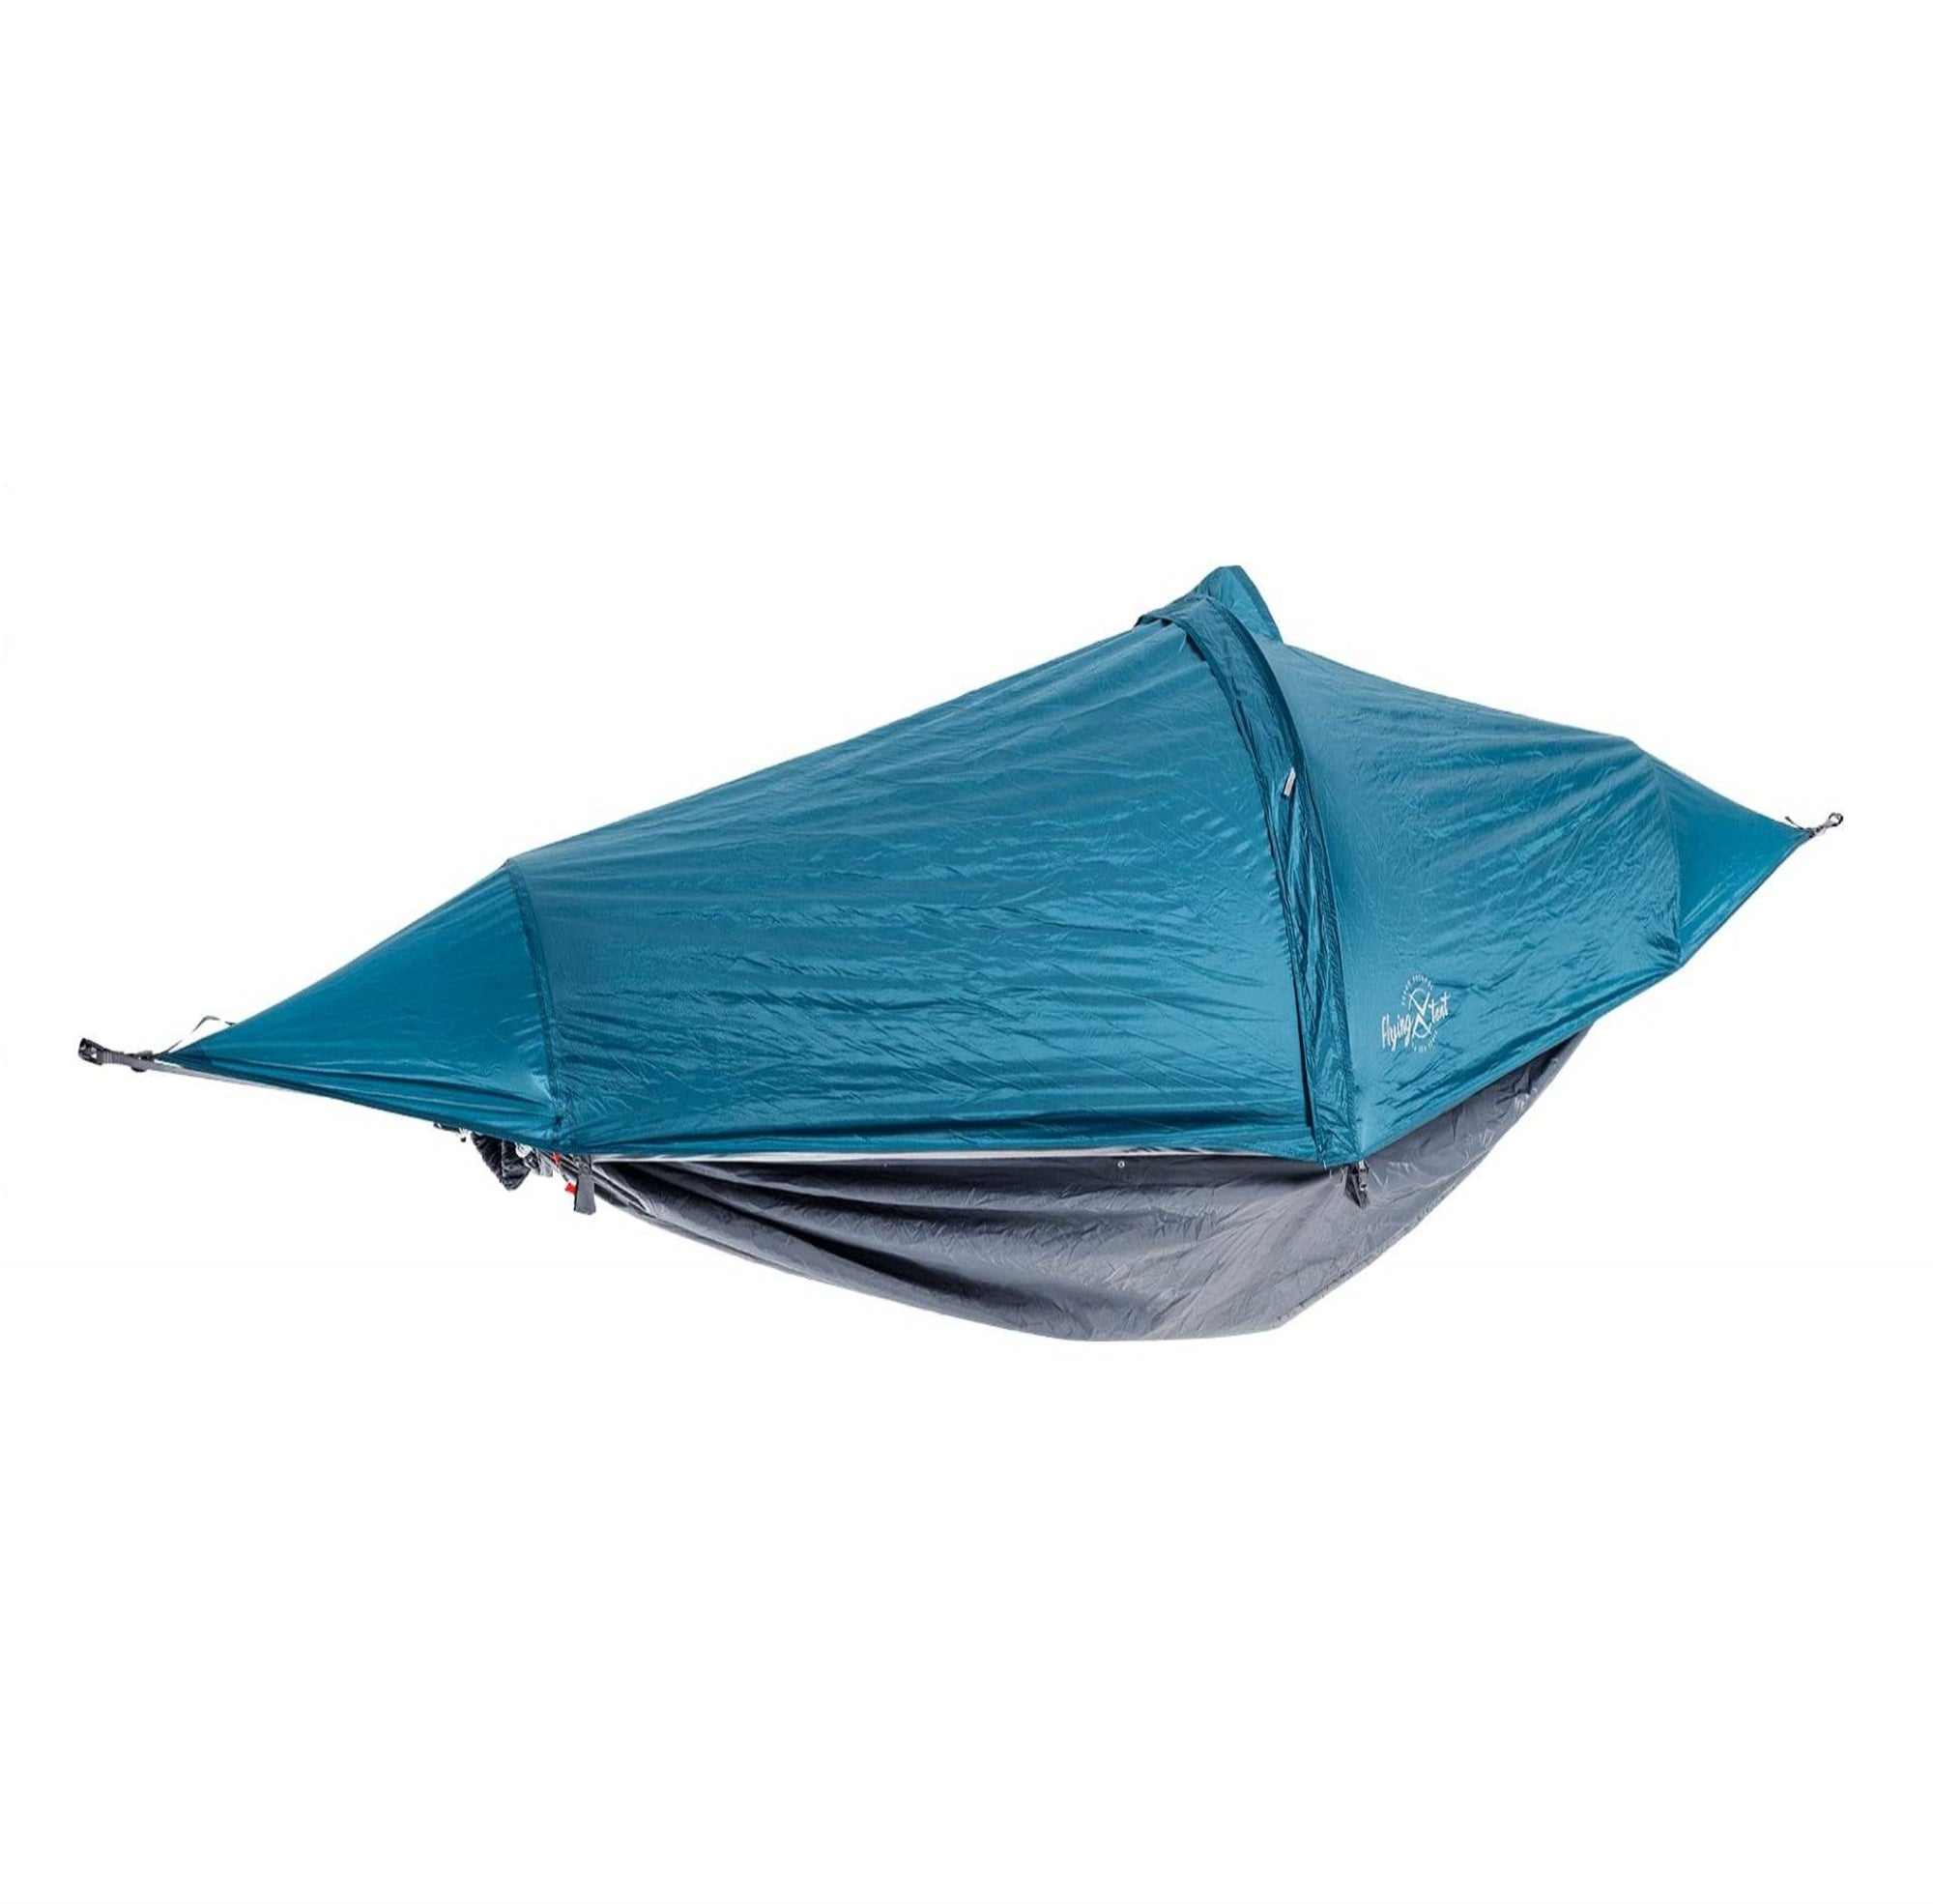 Flying Tent Combo With Underquilt